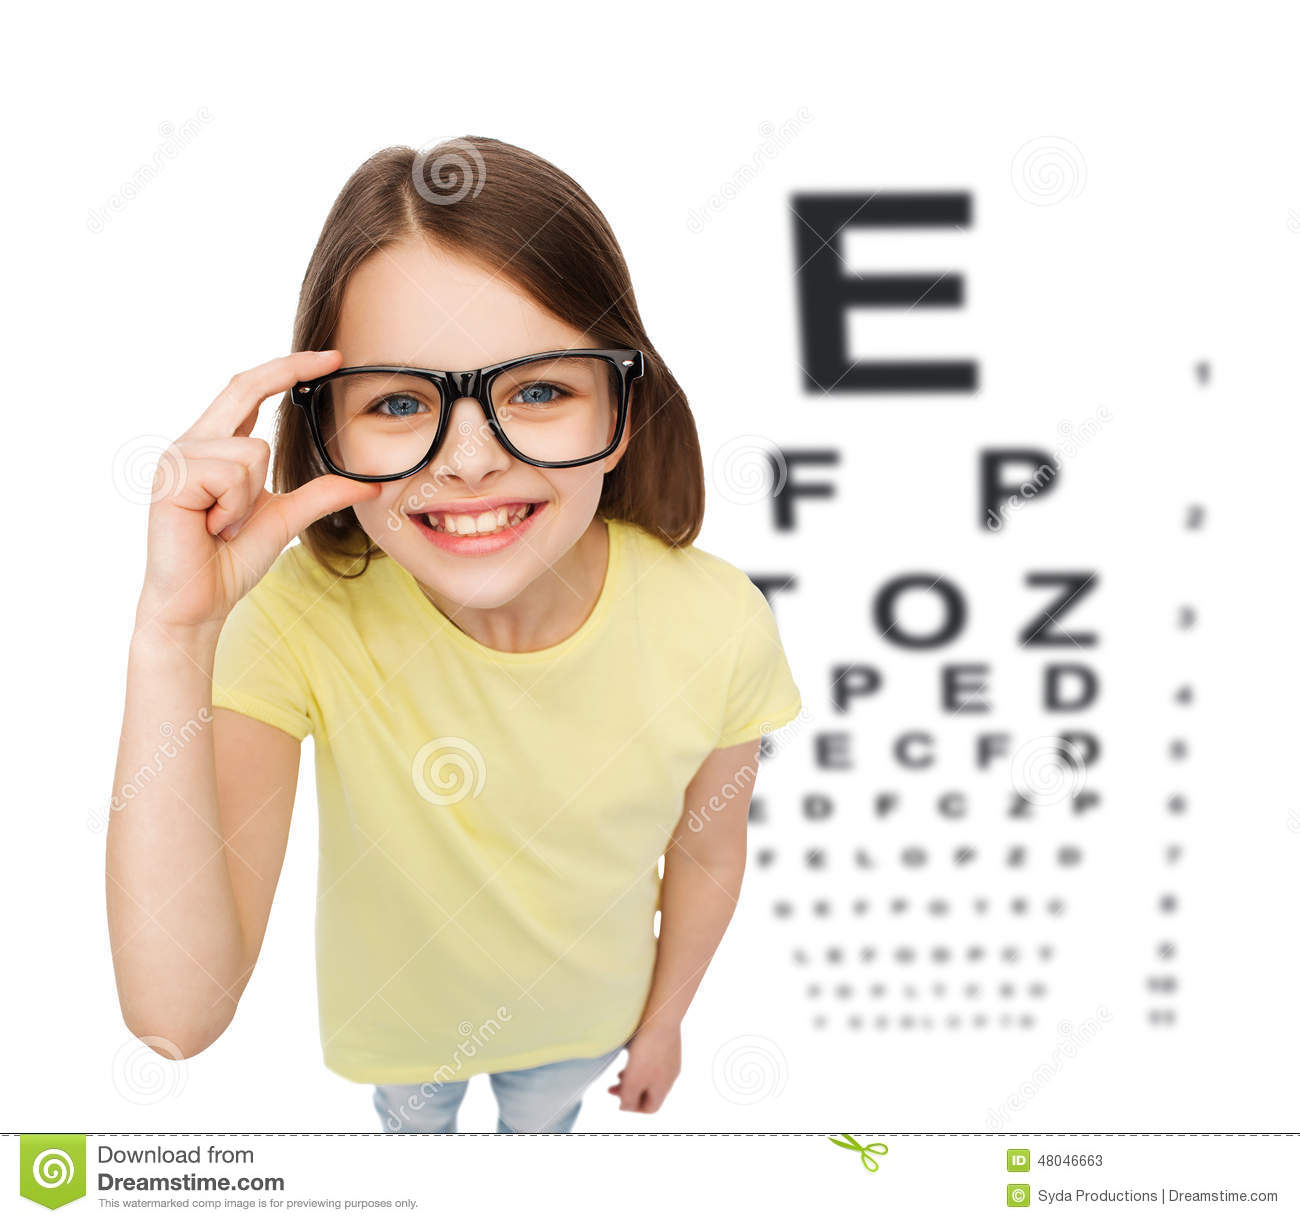 Sunglasses Clipart Black And White Smiling Little Girl In...